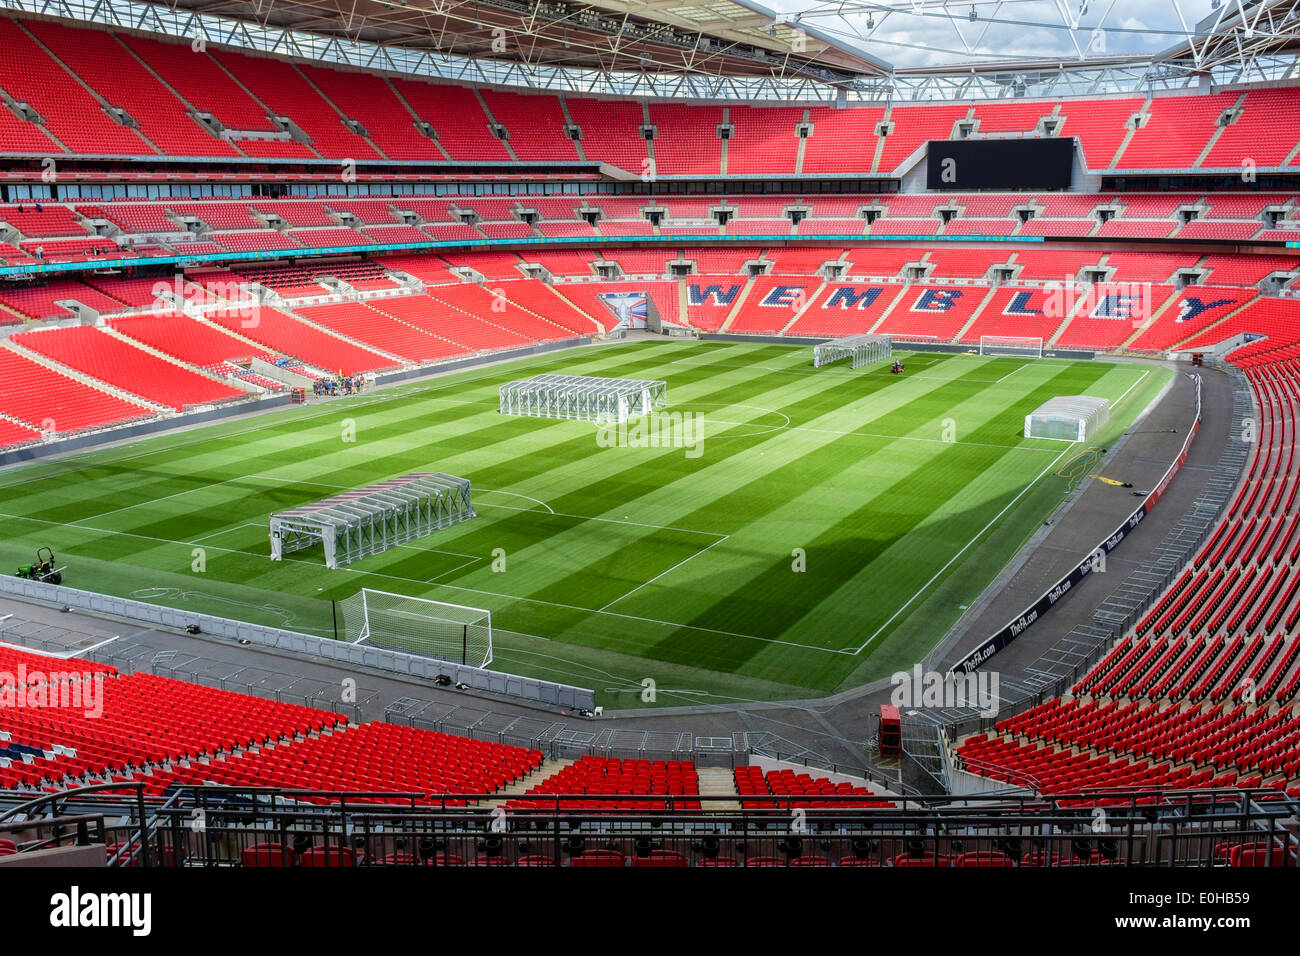 Wembley Stadium. London UK - Stock Image